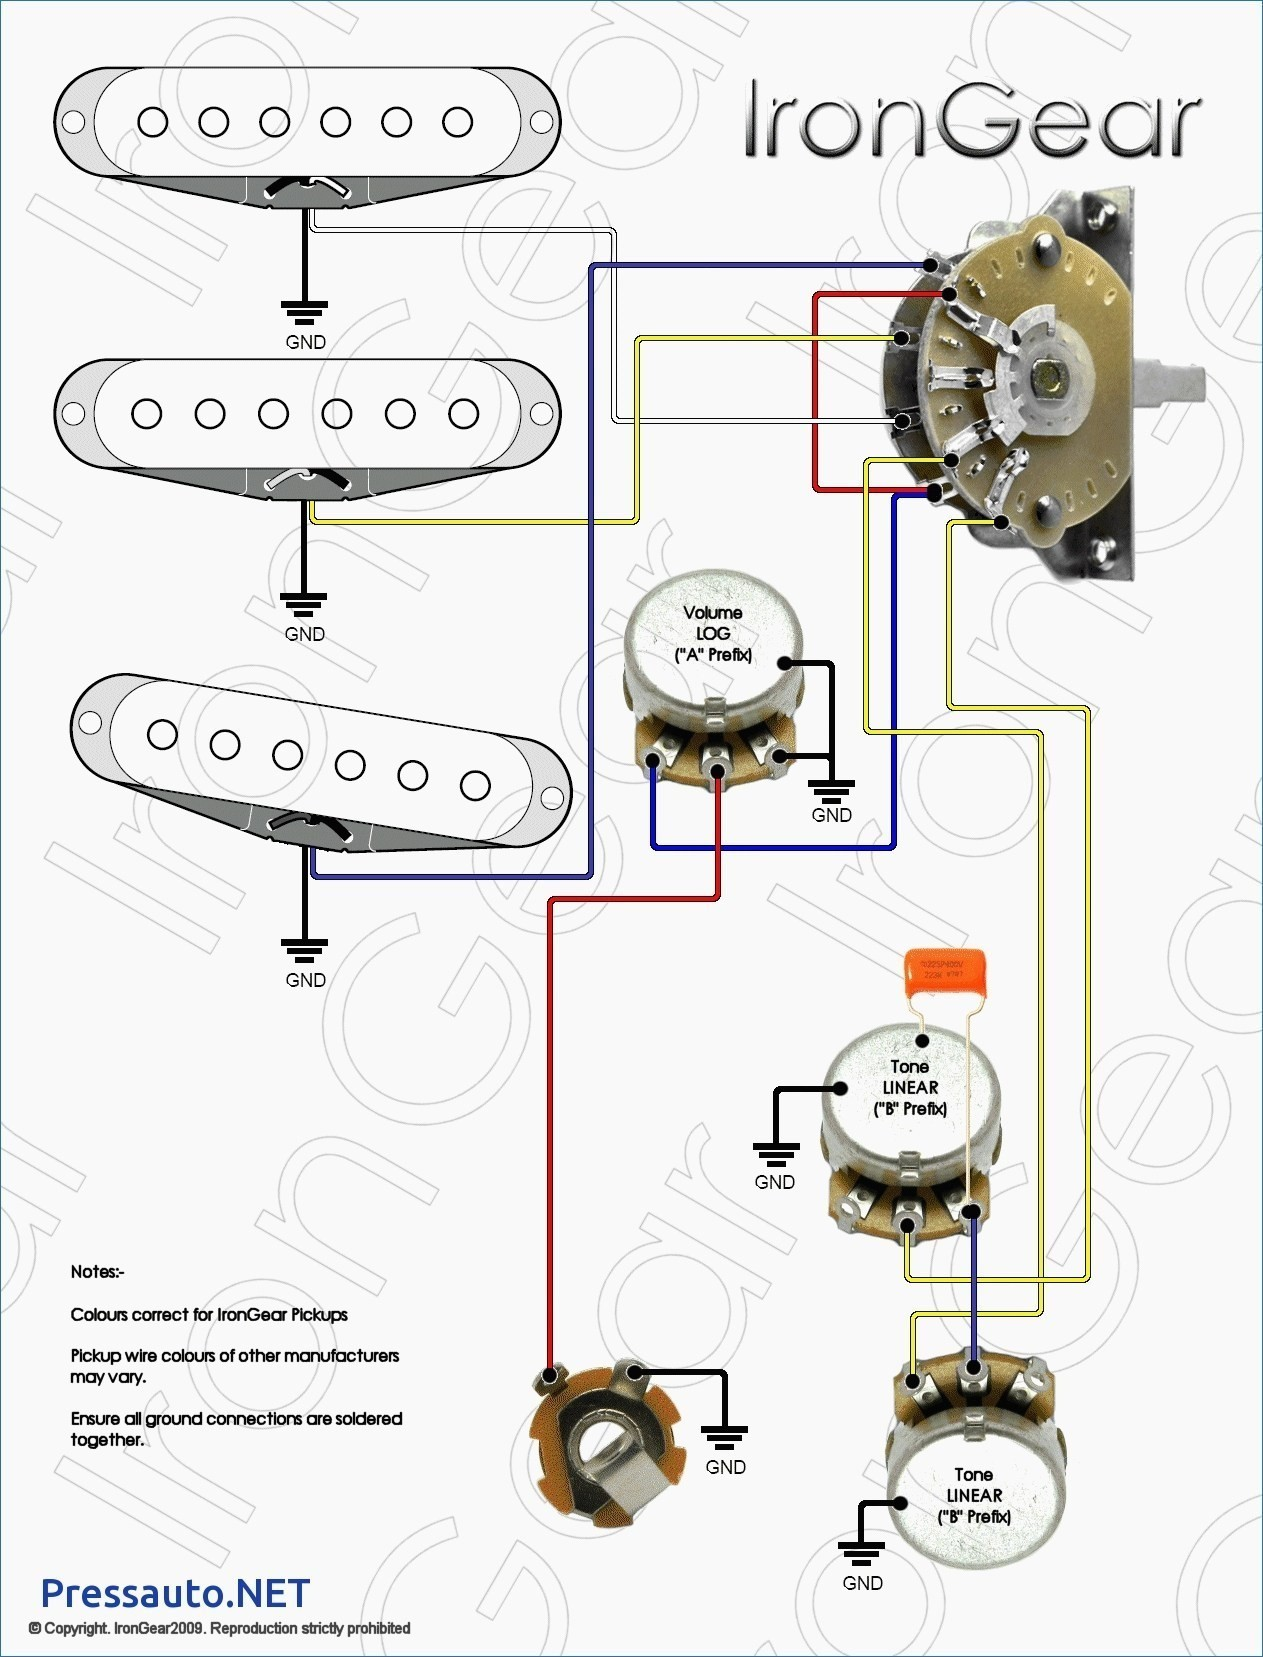 Gretsch Tennessean Wiring Diagram Library Country Gentleman Image Dean Guitar Valid